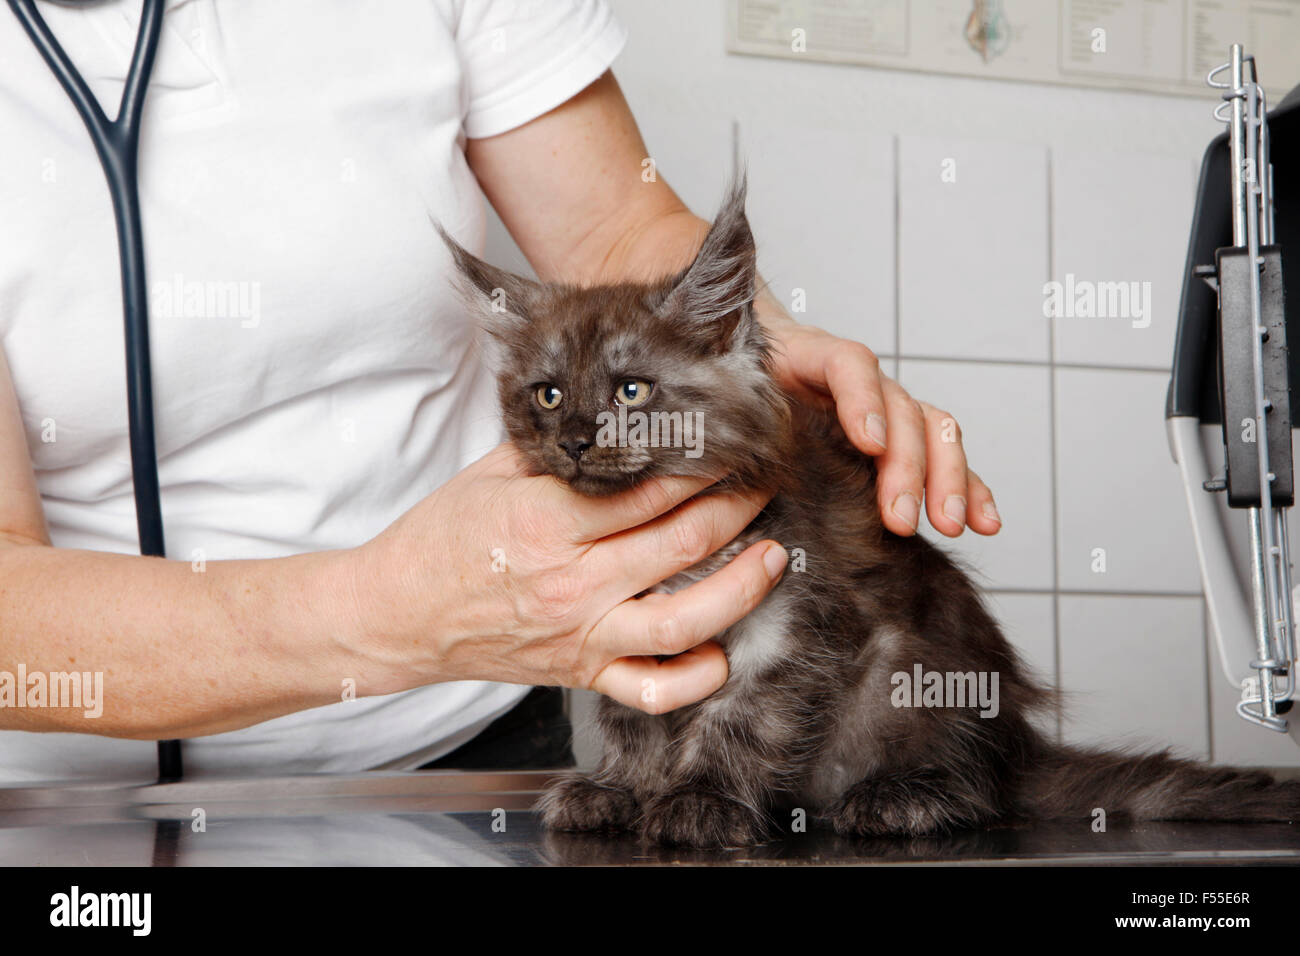 Midsection of vet examining cat's neck at table in clinic - Stock Image